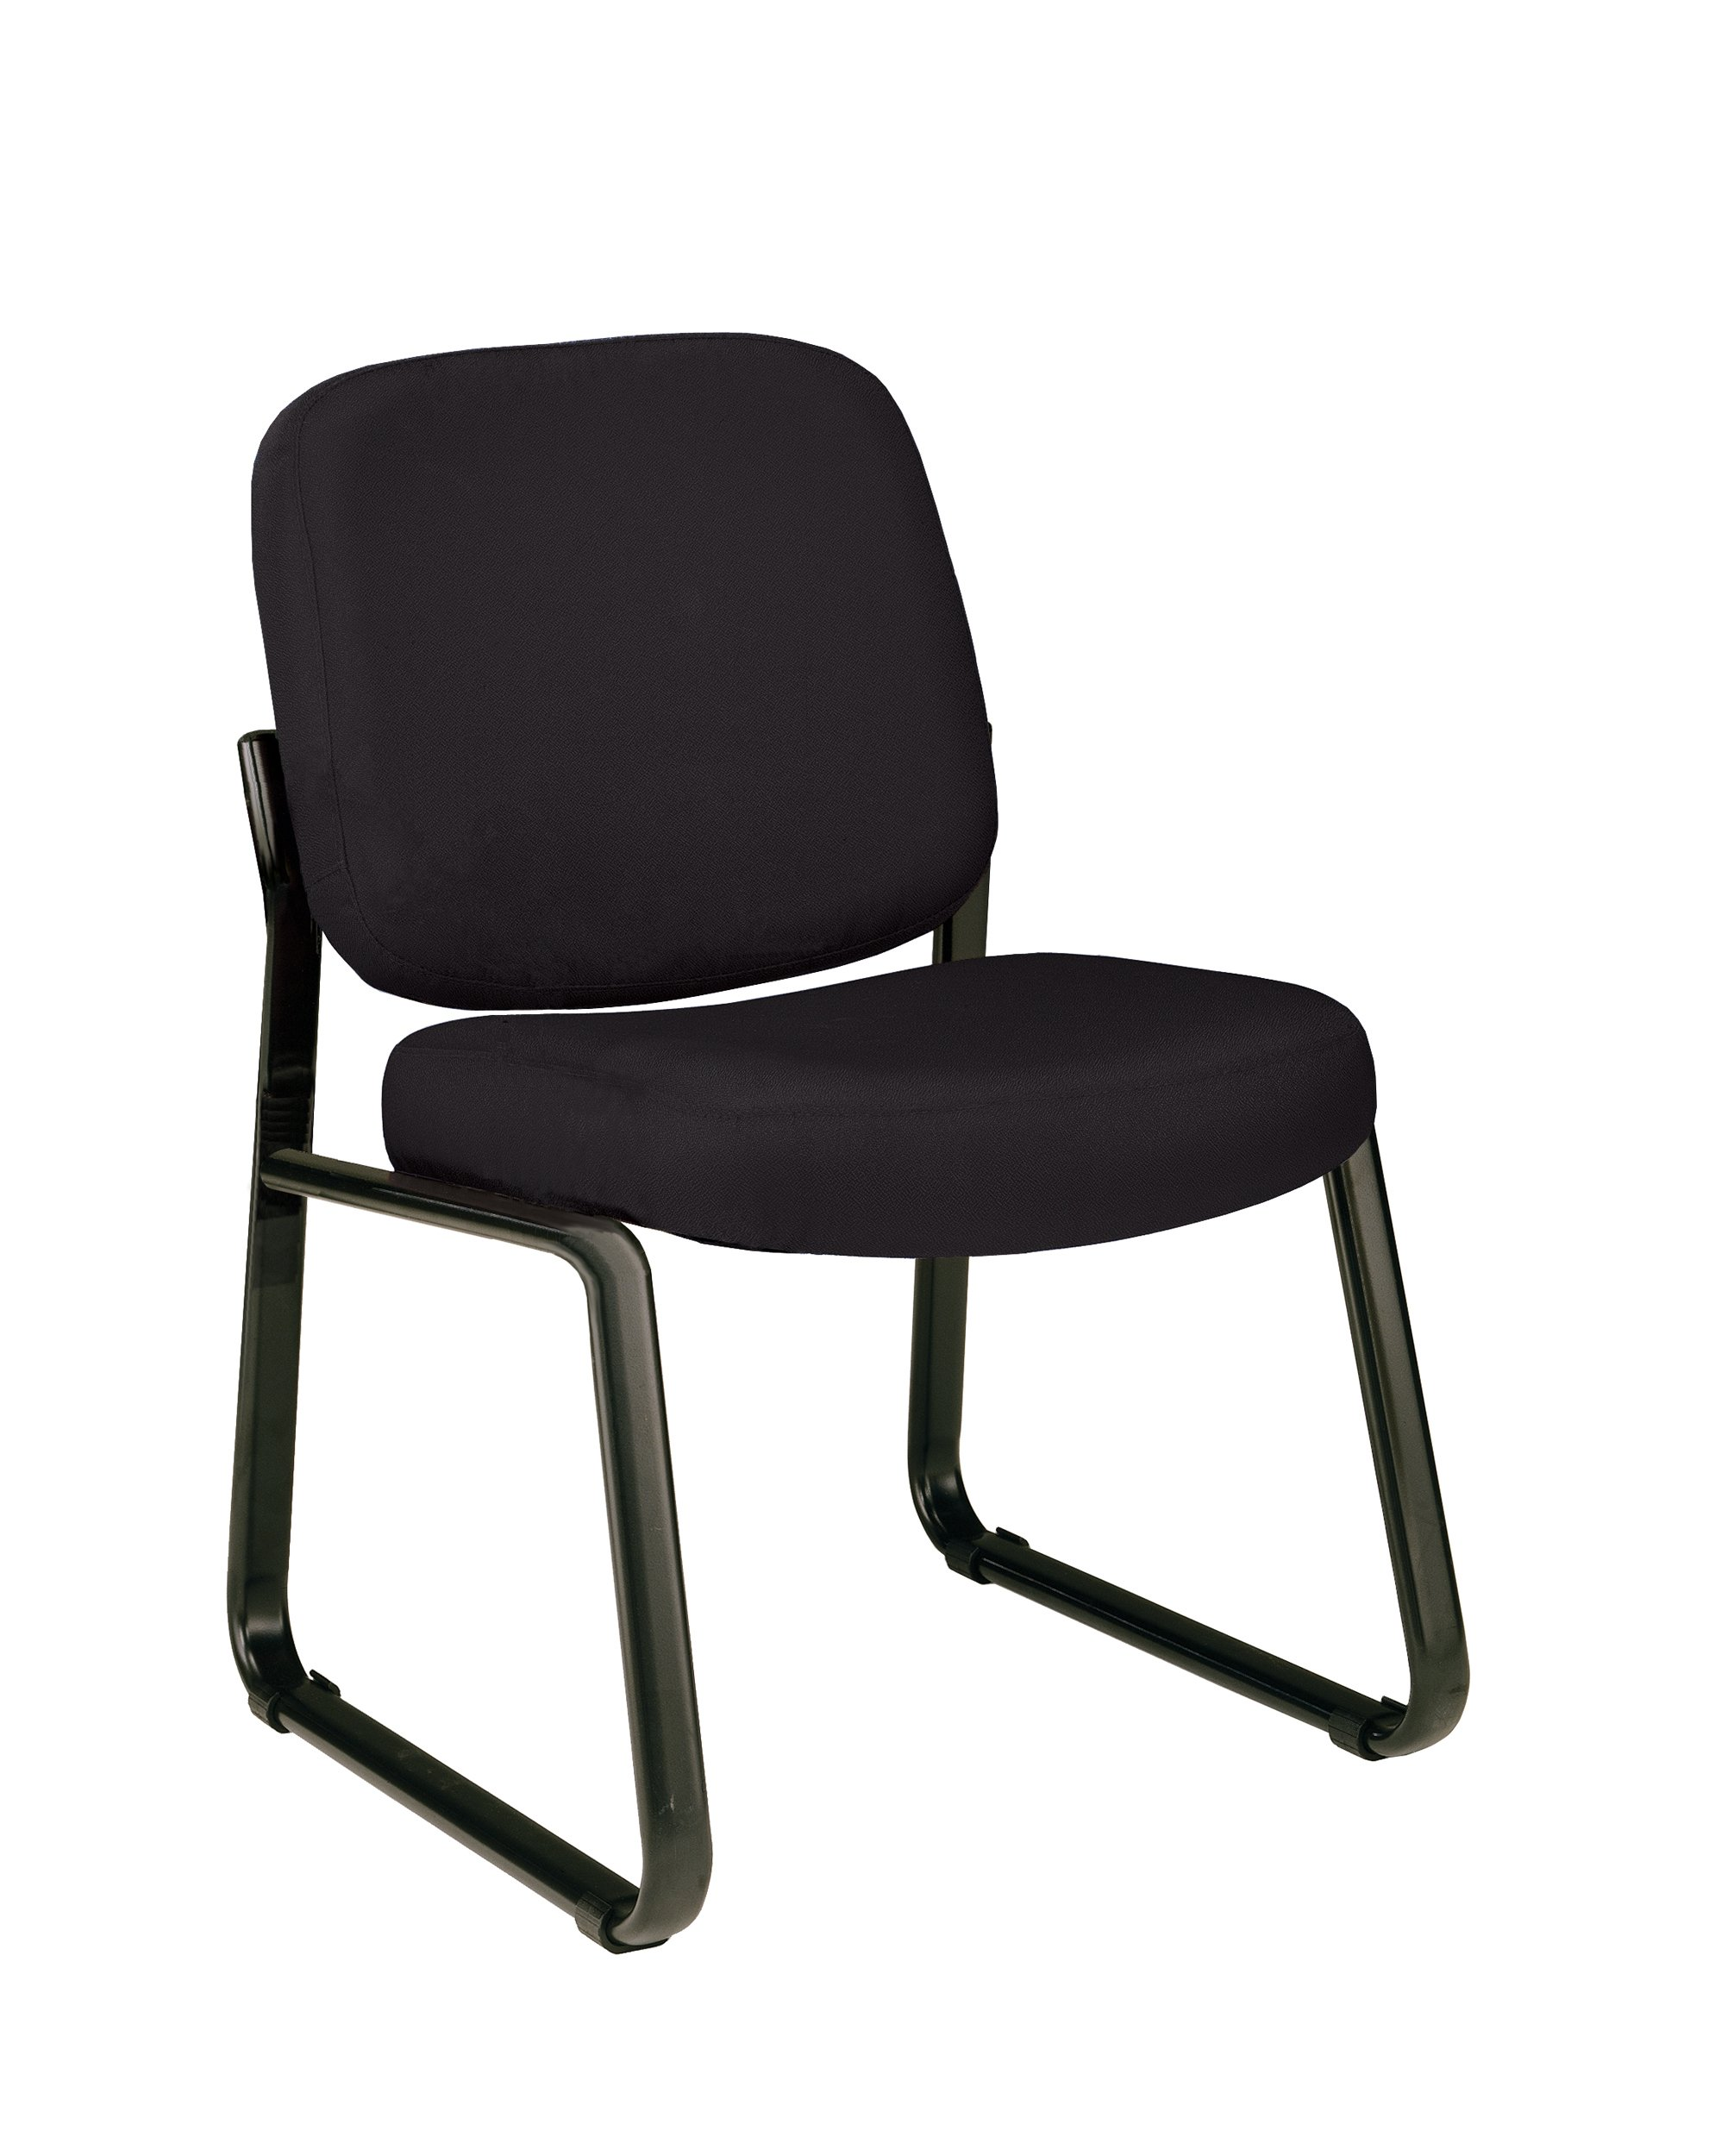 OFM 405-805 Armless Reception Chair - Mid-Back Guest Chair, Black